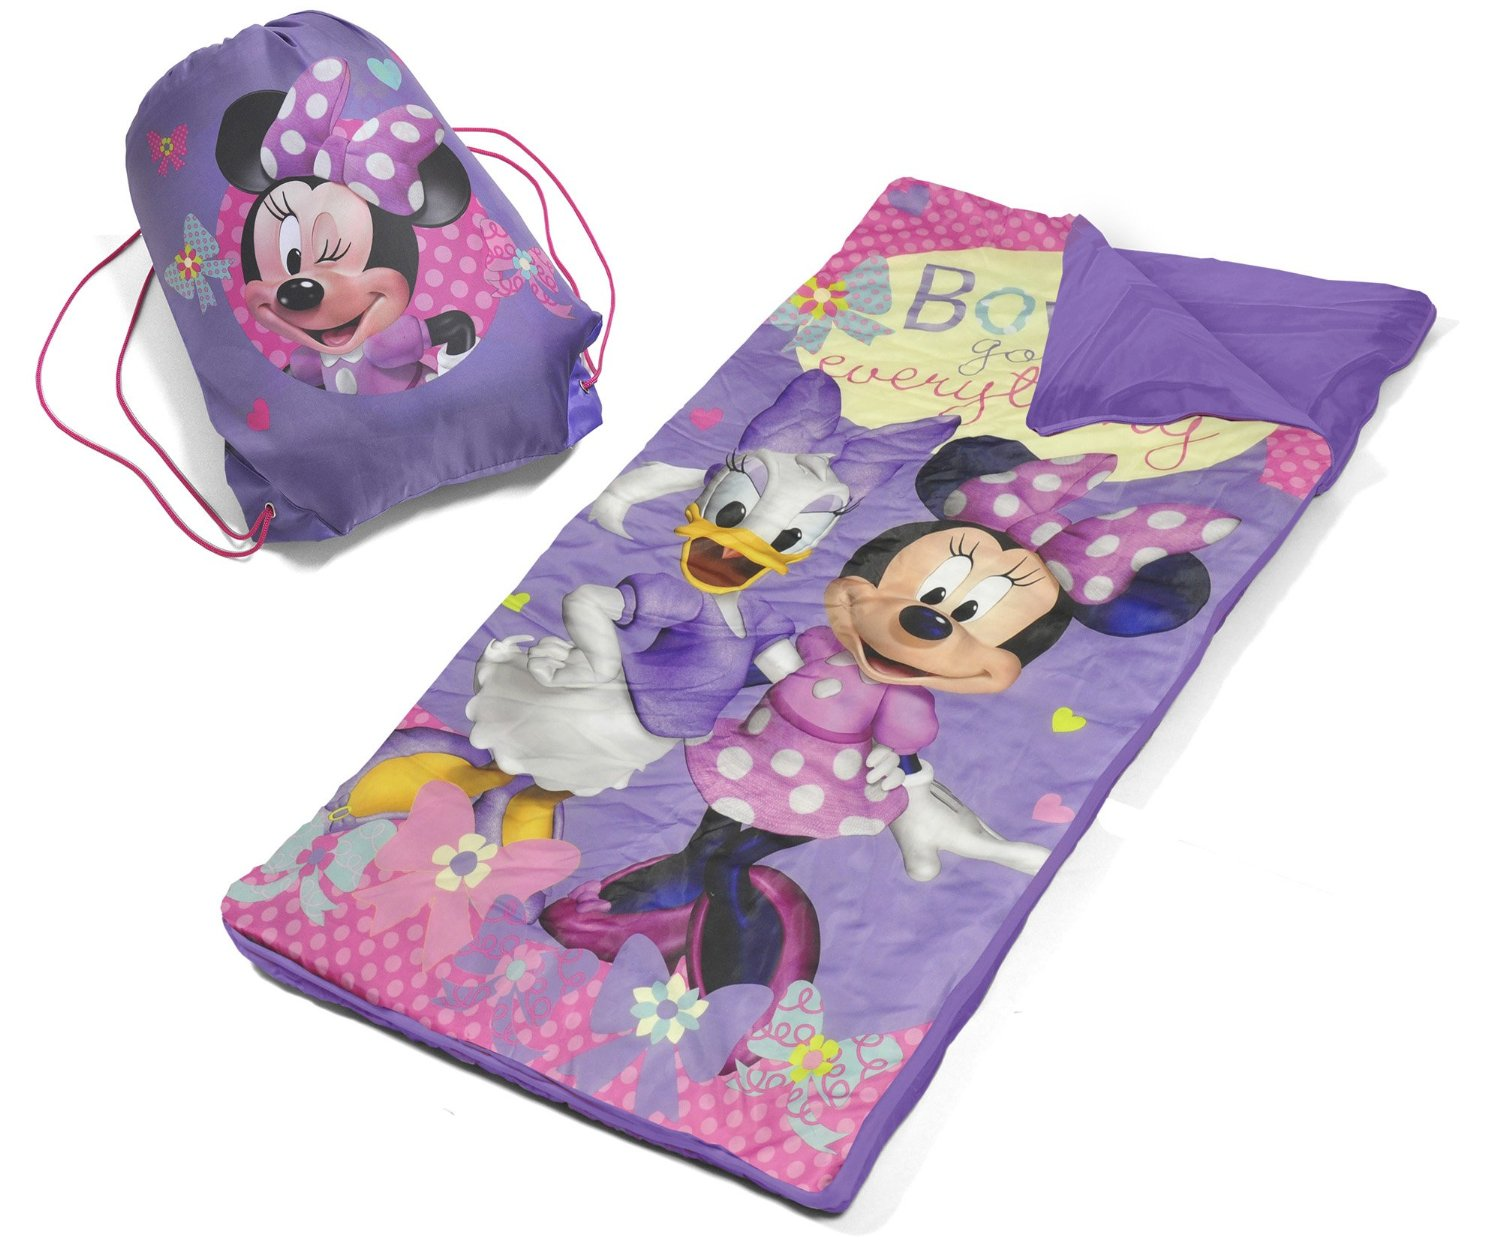 Target Sleeping Bags Disney Minnie Mouse Slumber Bag Set Only 9 98 Lowest Price